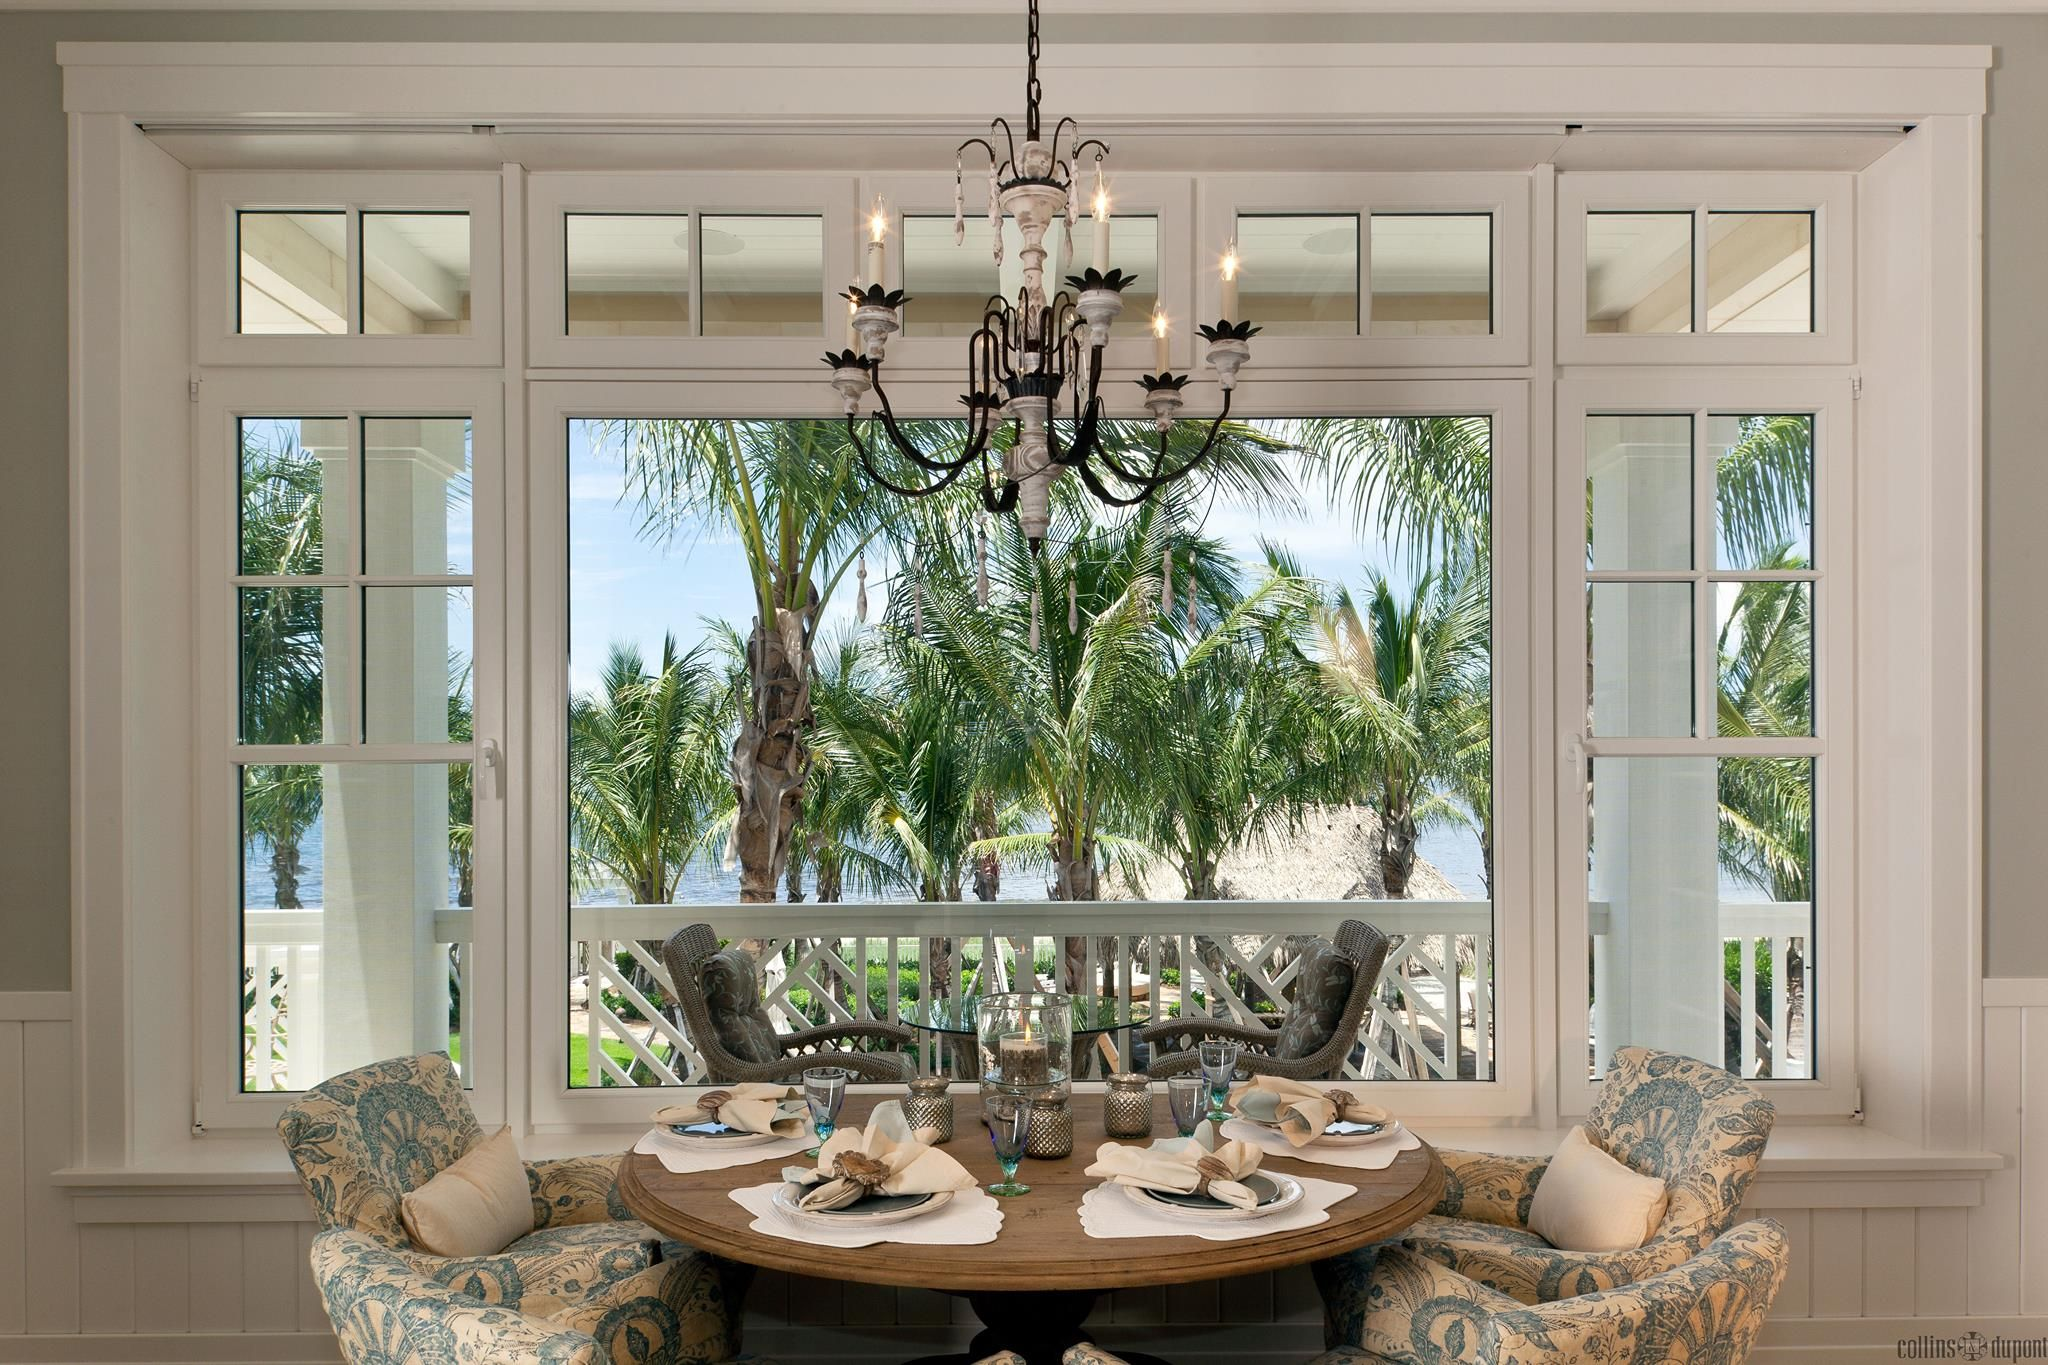 Collins & Dupont Design Group beachfront home design by: collins & dupont design group